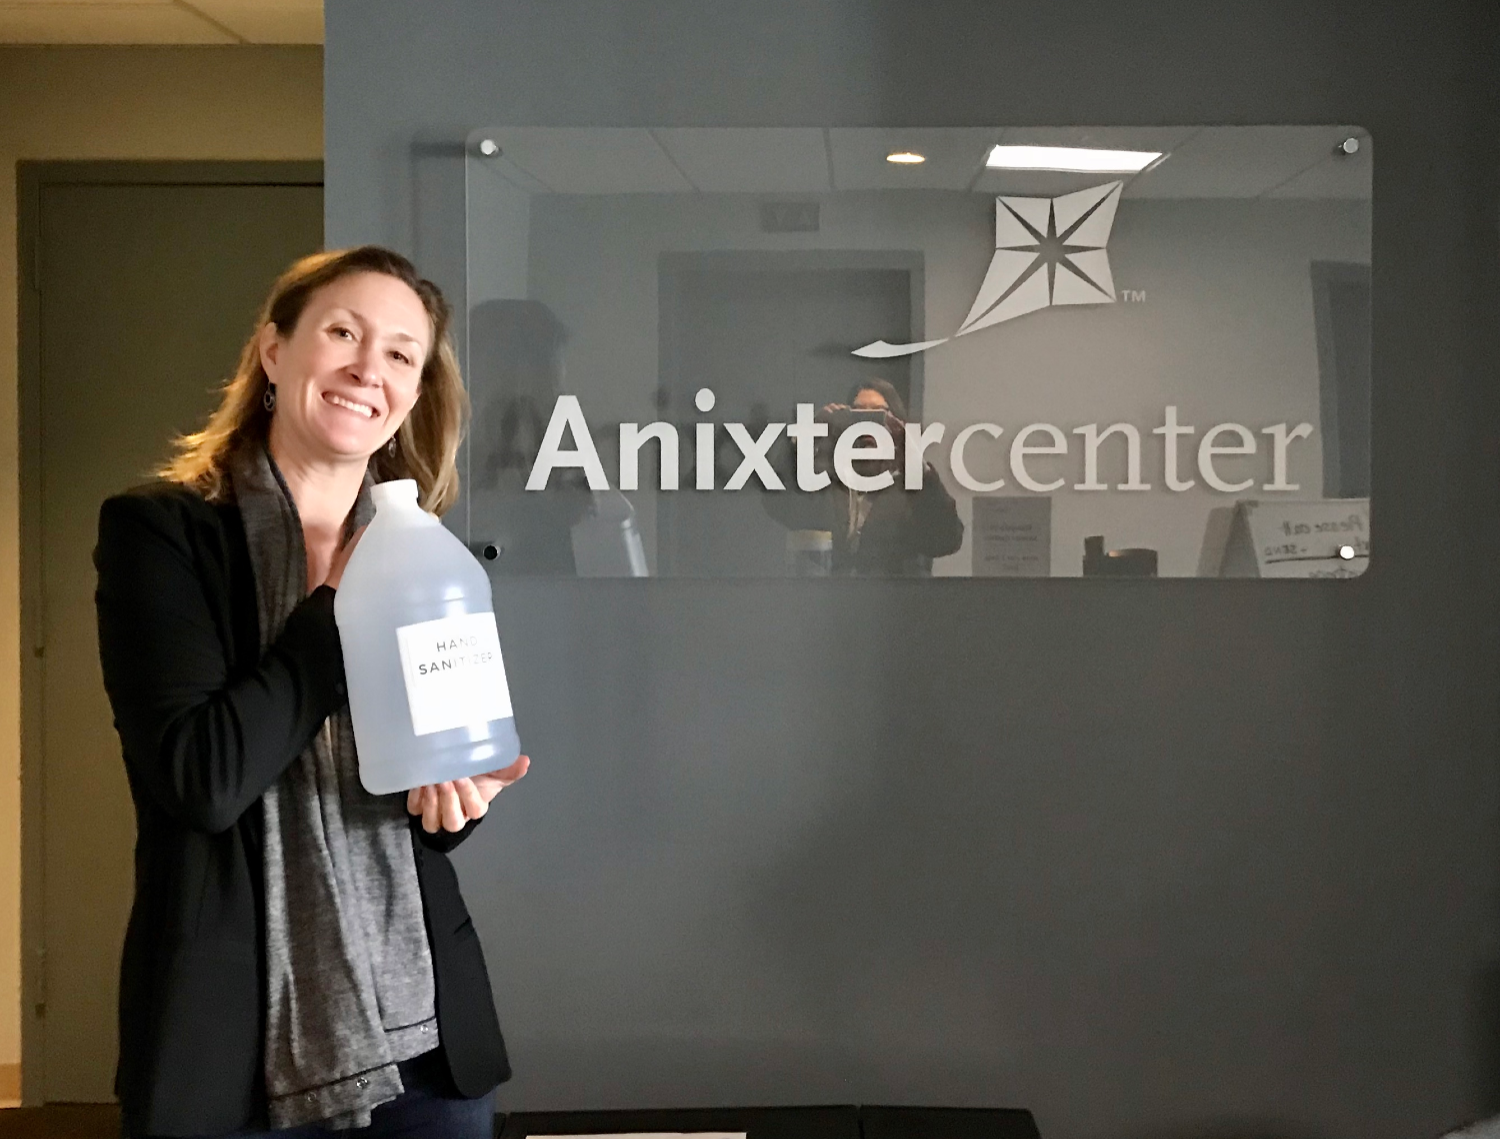 Anixter Center President & CEO posing in front of the Anixter Center sign with a gallon of the homemade sanitizer created and donated by KOVAL Distillery.